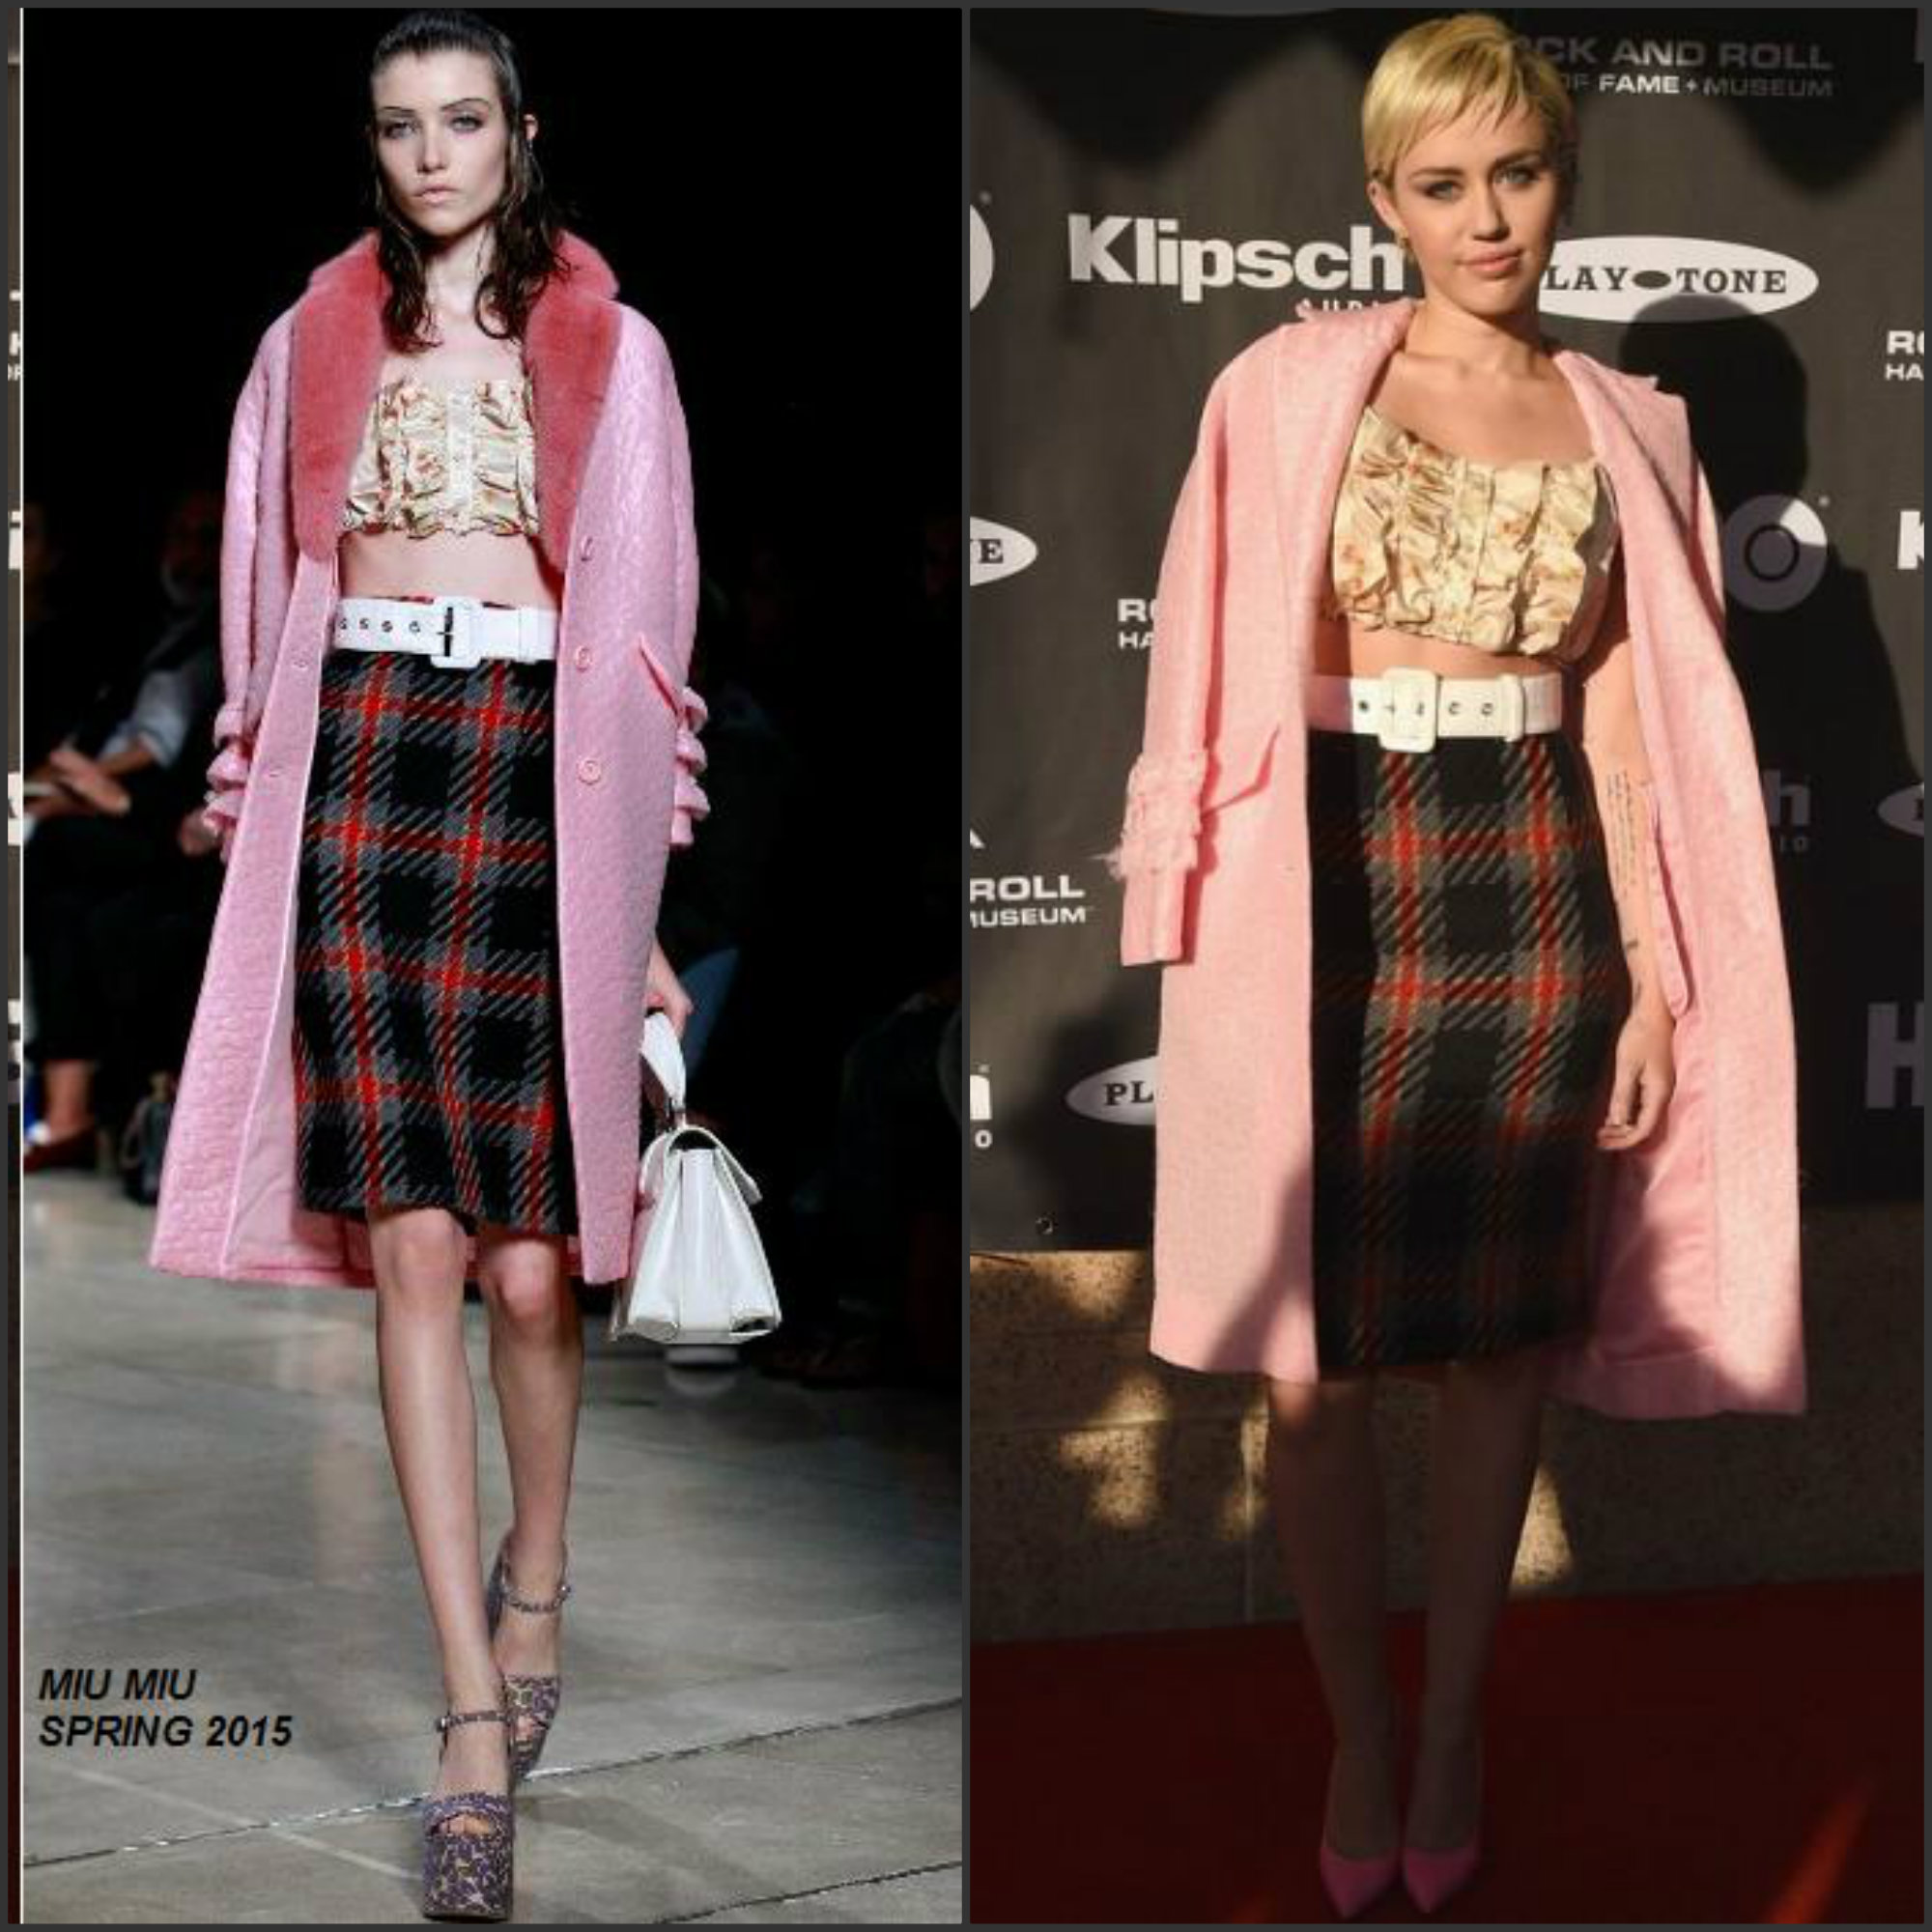 Miley-Cyrus-in-Miu-Miu-at-the-30th-Annual-Rock-and-Roll-and-Roll-Hall-Of-Fame-Induction-Ceremony